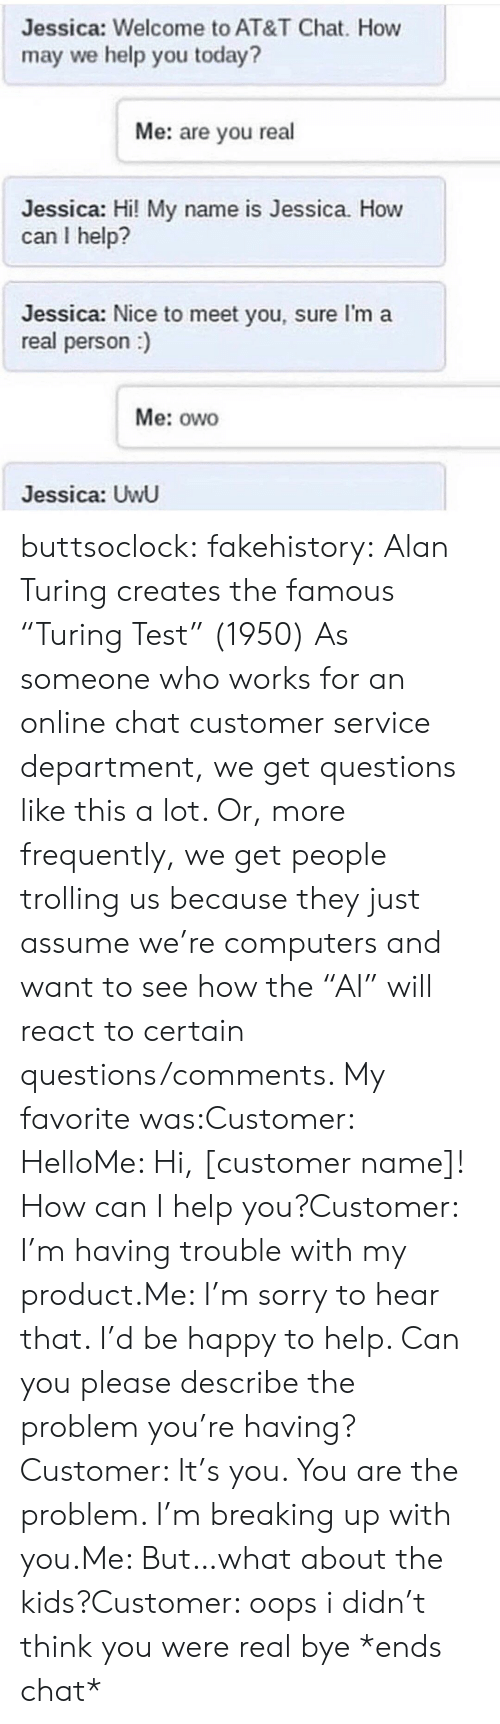 "Trolling: Jessica: Welcome to AT&T Chat. How  may we help you today?  Me: are you real  Jessica: Hi! My name is Jessica. How  can I help?  Jessica: Nice to meet you, sure I'm a  real person)  Me: owo  Jessica: UwU buttsoclock:  fakehistory: Alan Turing creates the famous ""Turing Test"" (1950) As someone who works for an online chat customer service department, we get questions like this a lot. Or, more frequently, we get people trolling us because they just assume we're computers and want to see how the ""AI"" will react to certain questions/comments. My favorite was:Customer: HelloMe: Hi, [customer name]! How can I help you?Customer: I'm having trouble with my product.Me: I'm sorry to hear that. I'd be happy to help. Can you please describe the problem you're having?Customer: It's you. You are the problem. I'm breaking up with you.Me: But…what about the kids?Customer: oops i didn't think you were real bye *ends chat*"